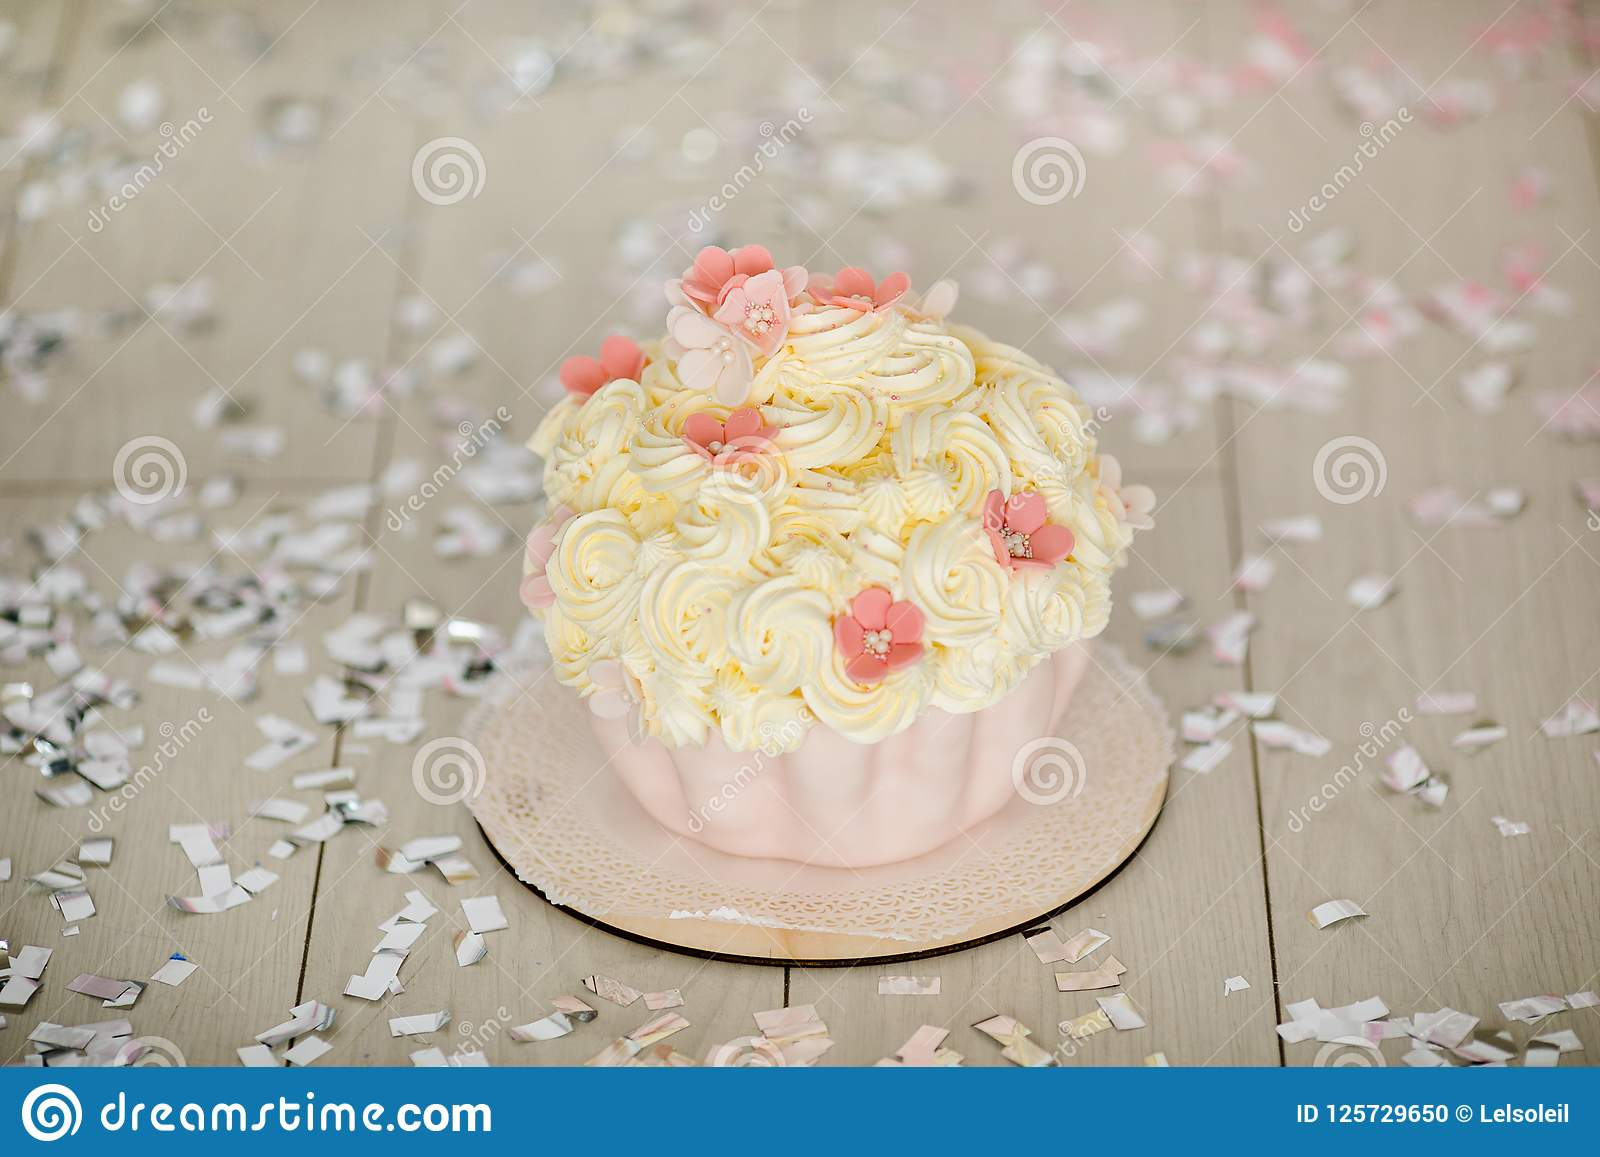 First Birthday Pink Cake With Flowers For Little Baby Girl And Decorations Smash